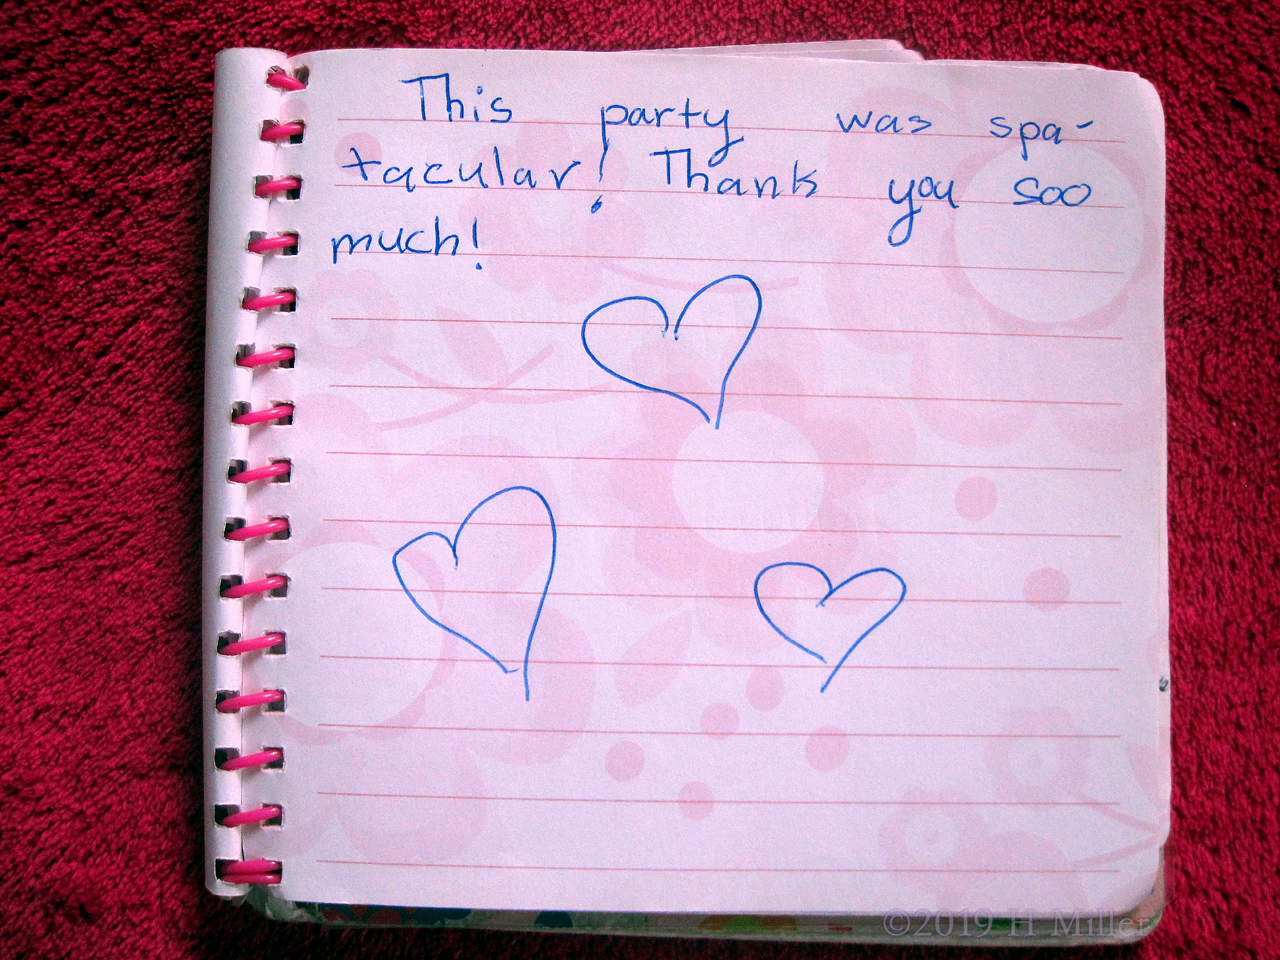 Another Spatacular Kids Spa Party Review